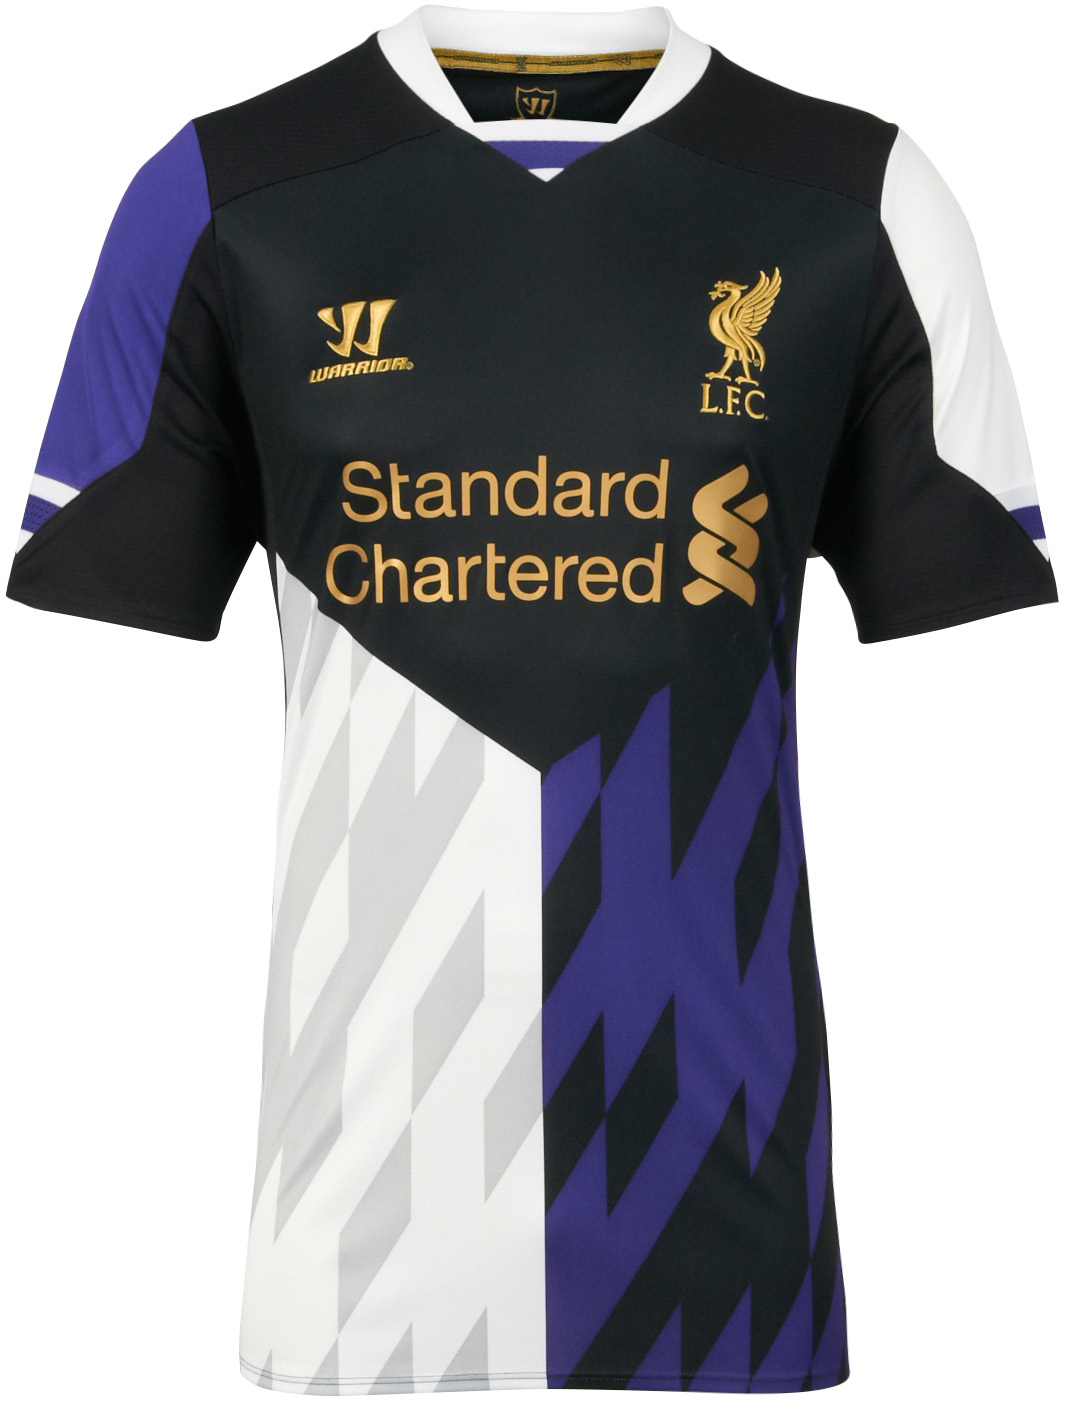 on sale 97cdc e8811 Leaked Liverpool kits for next season look very classy ...